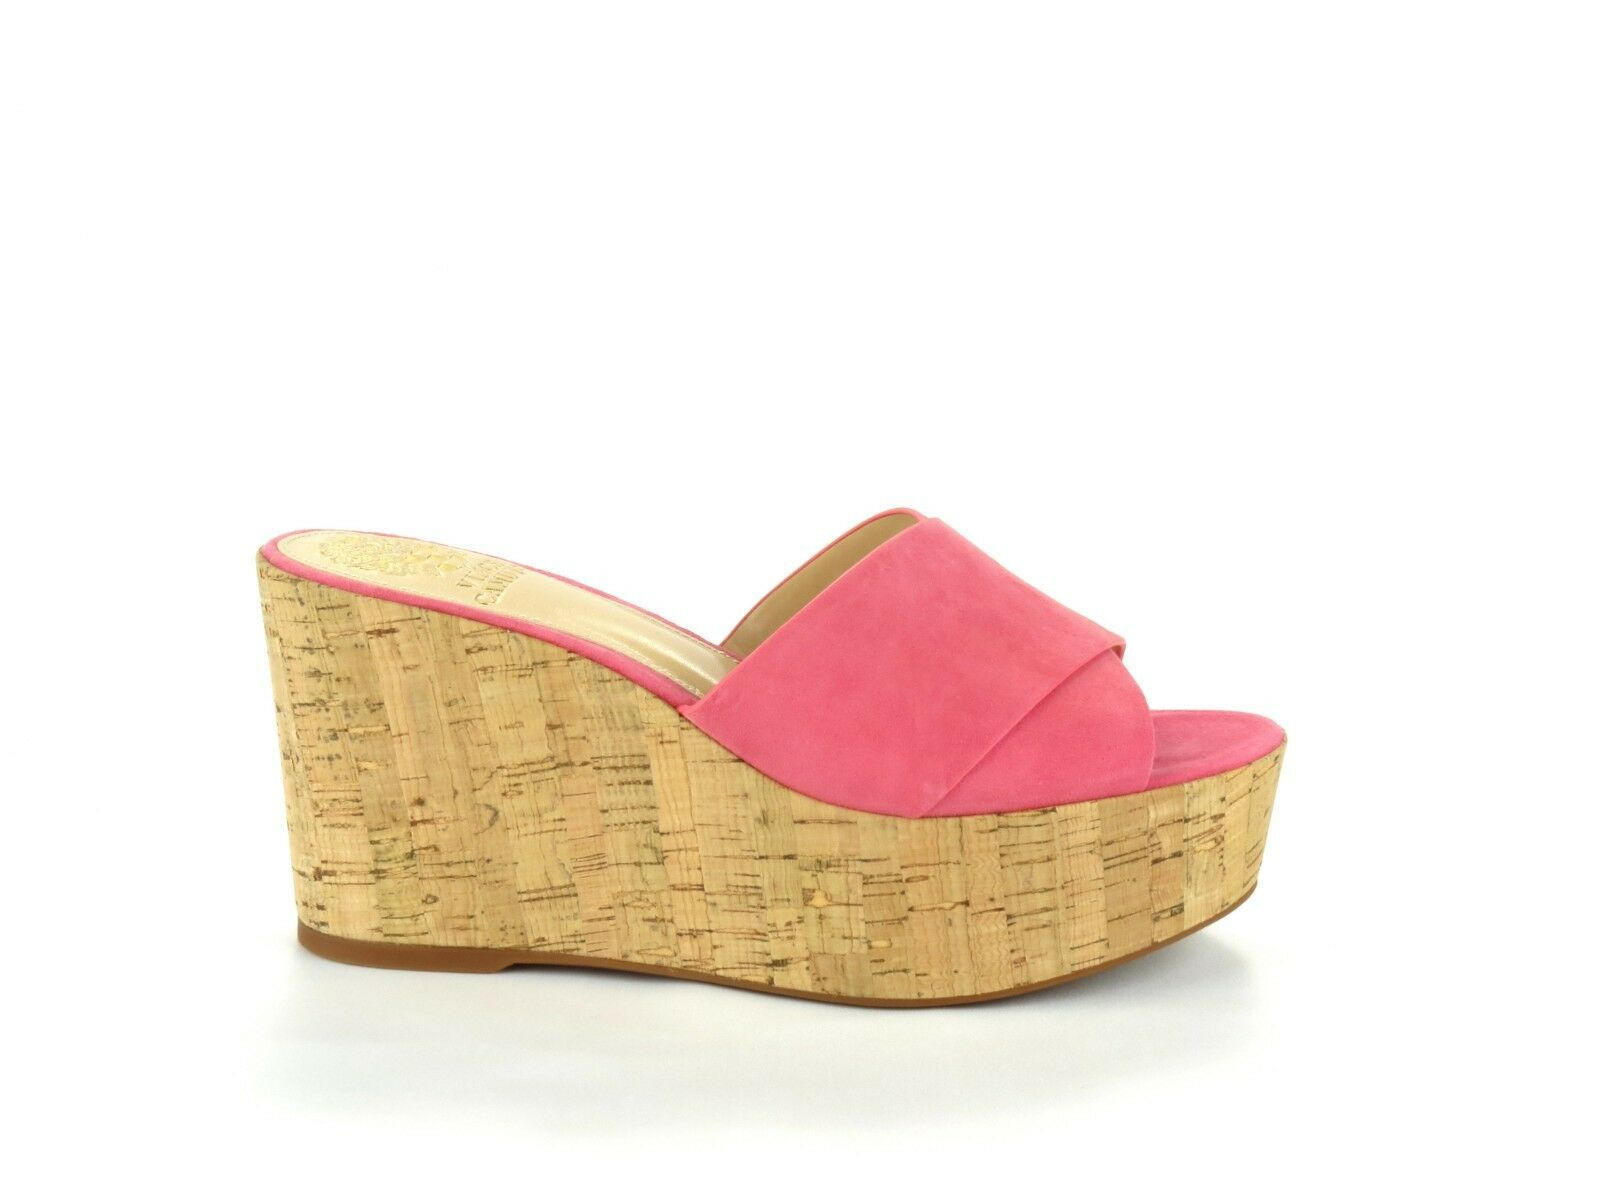 aa2fac6ca86 Buy Vince Camuto Kessina Soft Pink True Suede Leather Cork Platform ...